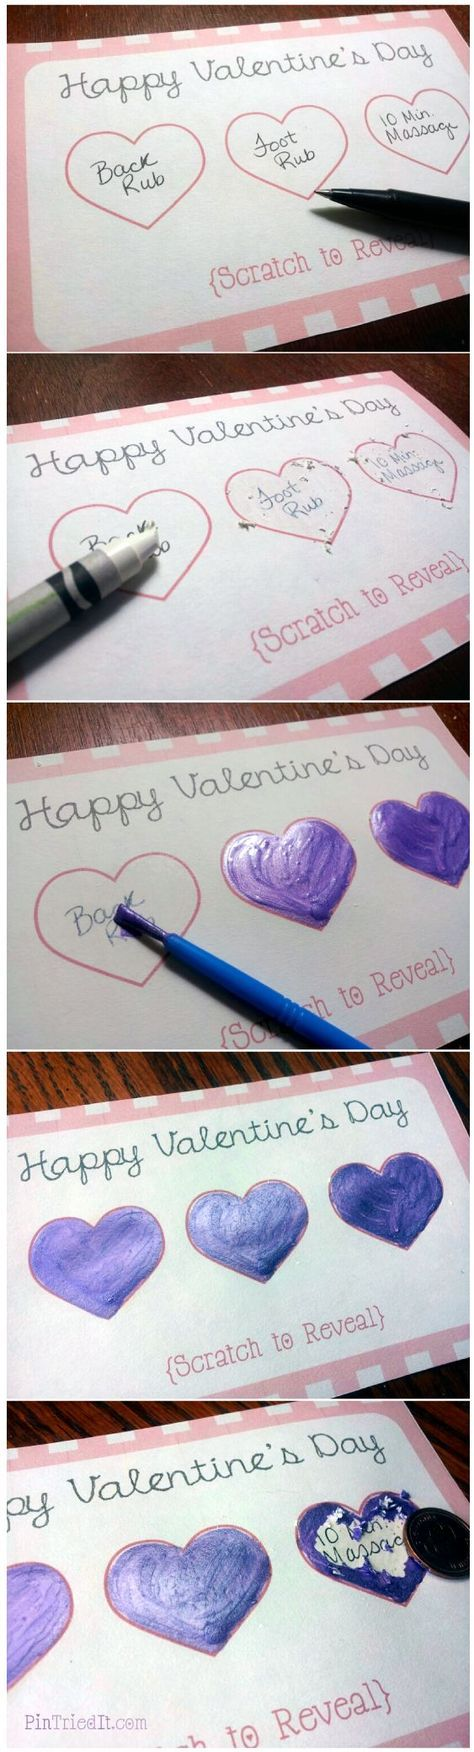 9d52fdca68f633fad92ddfed32c198d3 mouse crafts valentine day crafts - Valentine's Day Scratch Off Tickets - great to know how to DIY scratch cards! ...